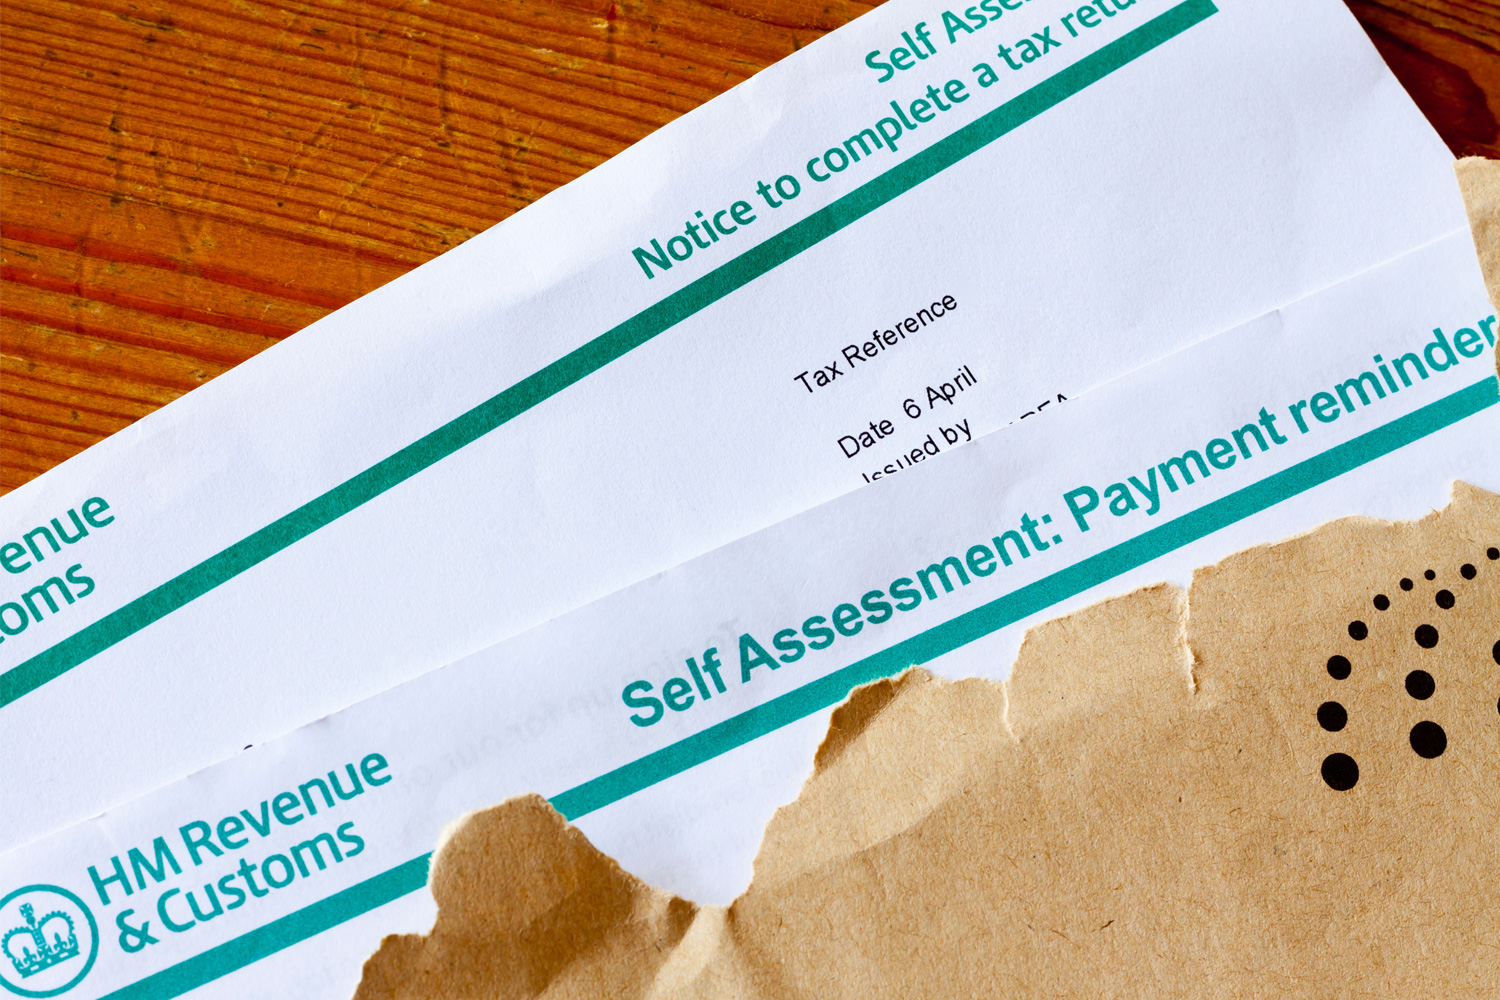 Those who are self-employed have to fill out their own tax returns, rather than having an employer deduct PAYE for them